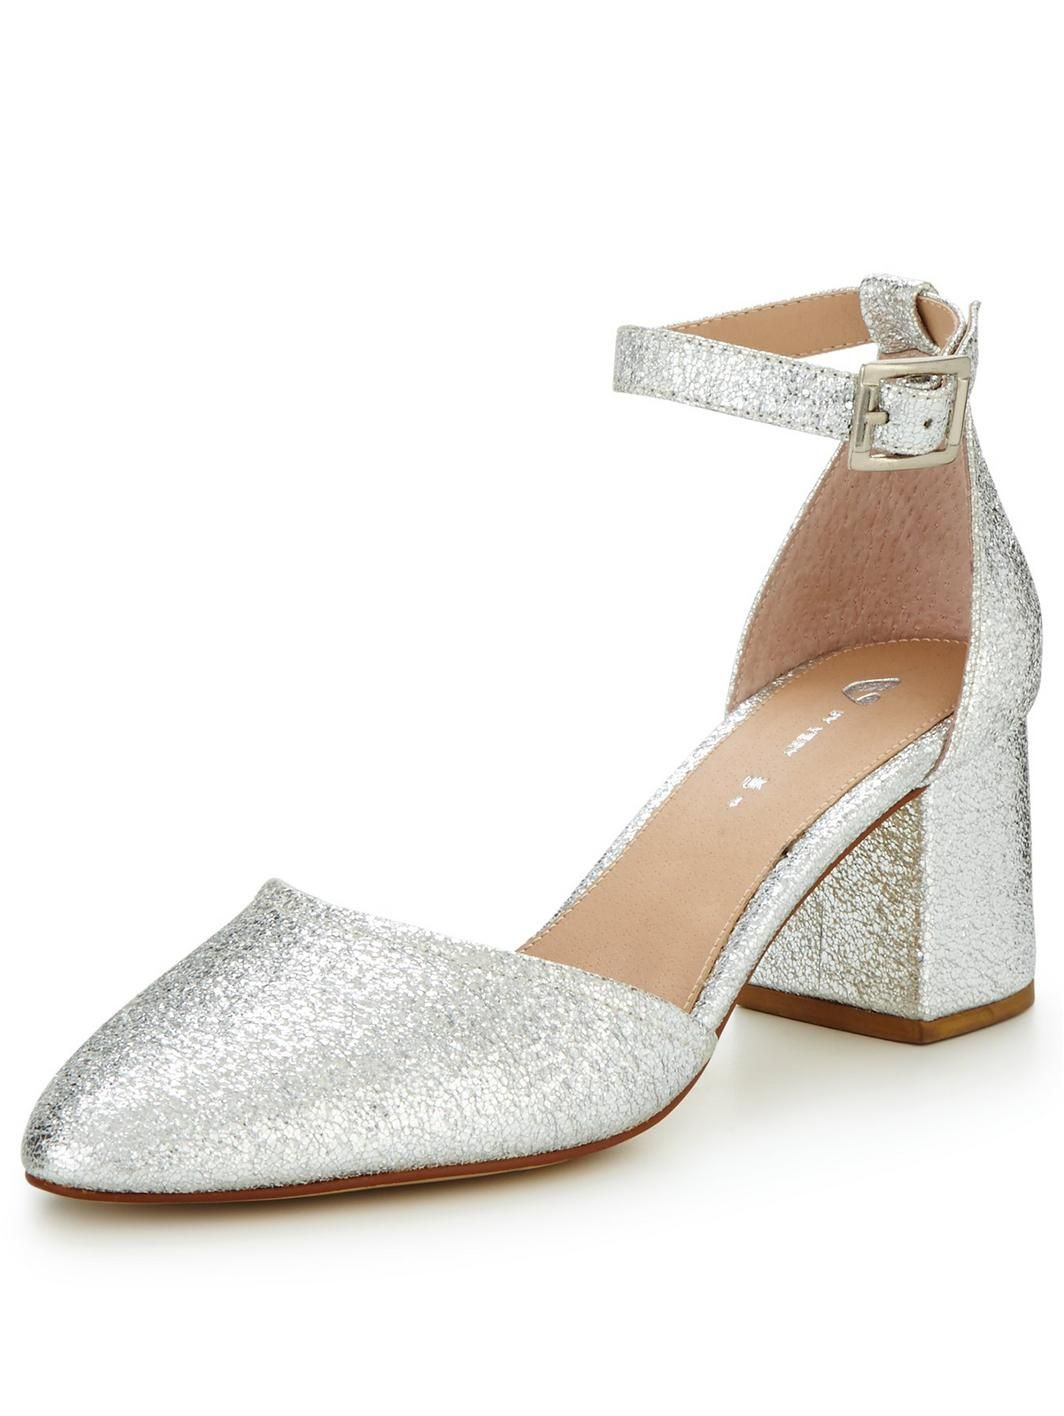 V by Very Sparkle Metallic Block Heel Shoe - Silver, http://www.very.co.uk/v-by-very-sparkle-metallic-block-heel-shoe-silver/1600139279.prd